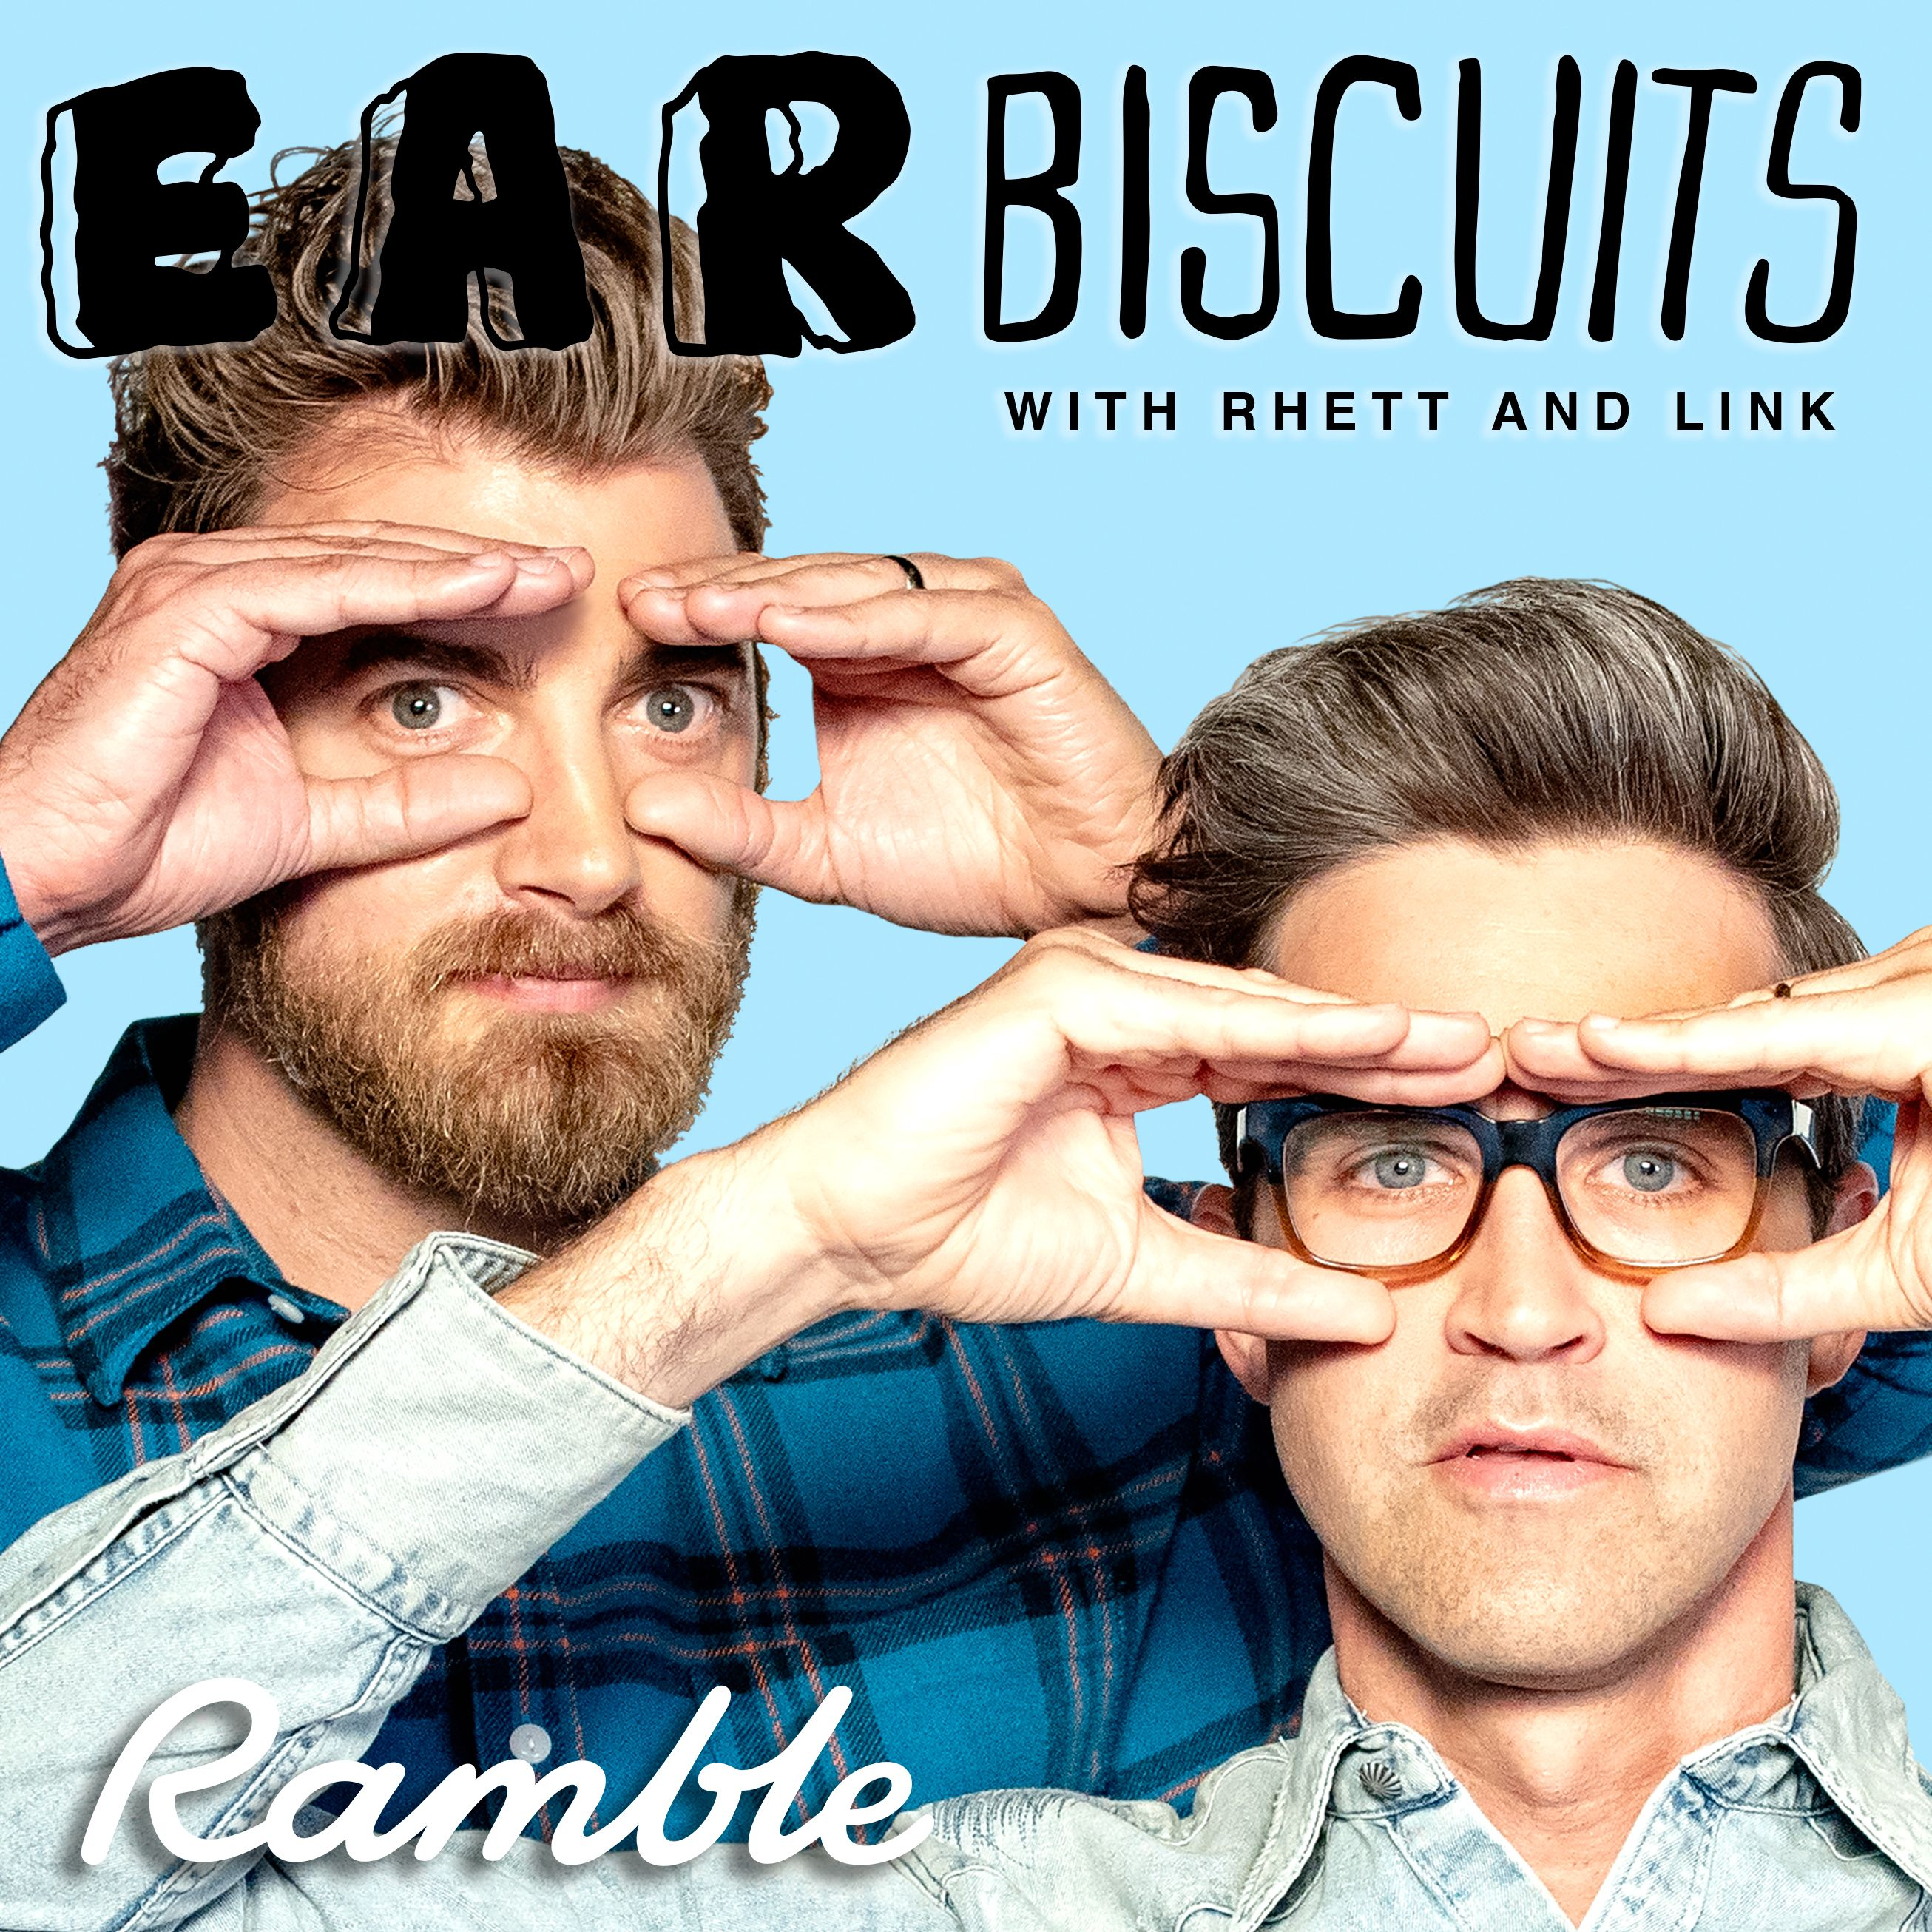 224: Our Lost Years | Ear Biscuits Ep. 224